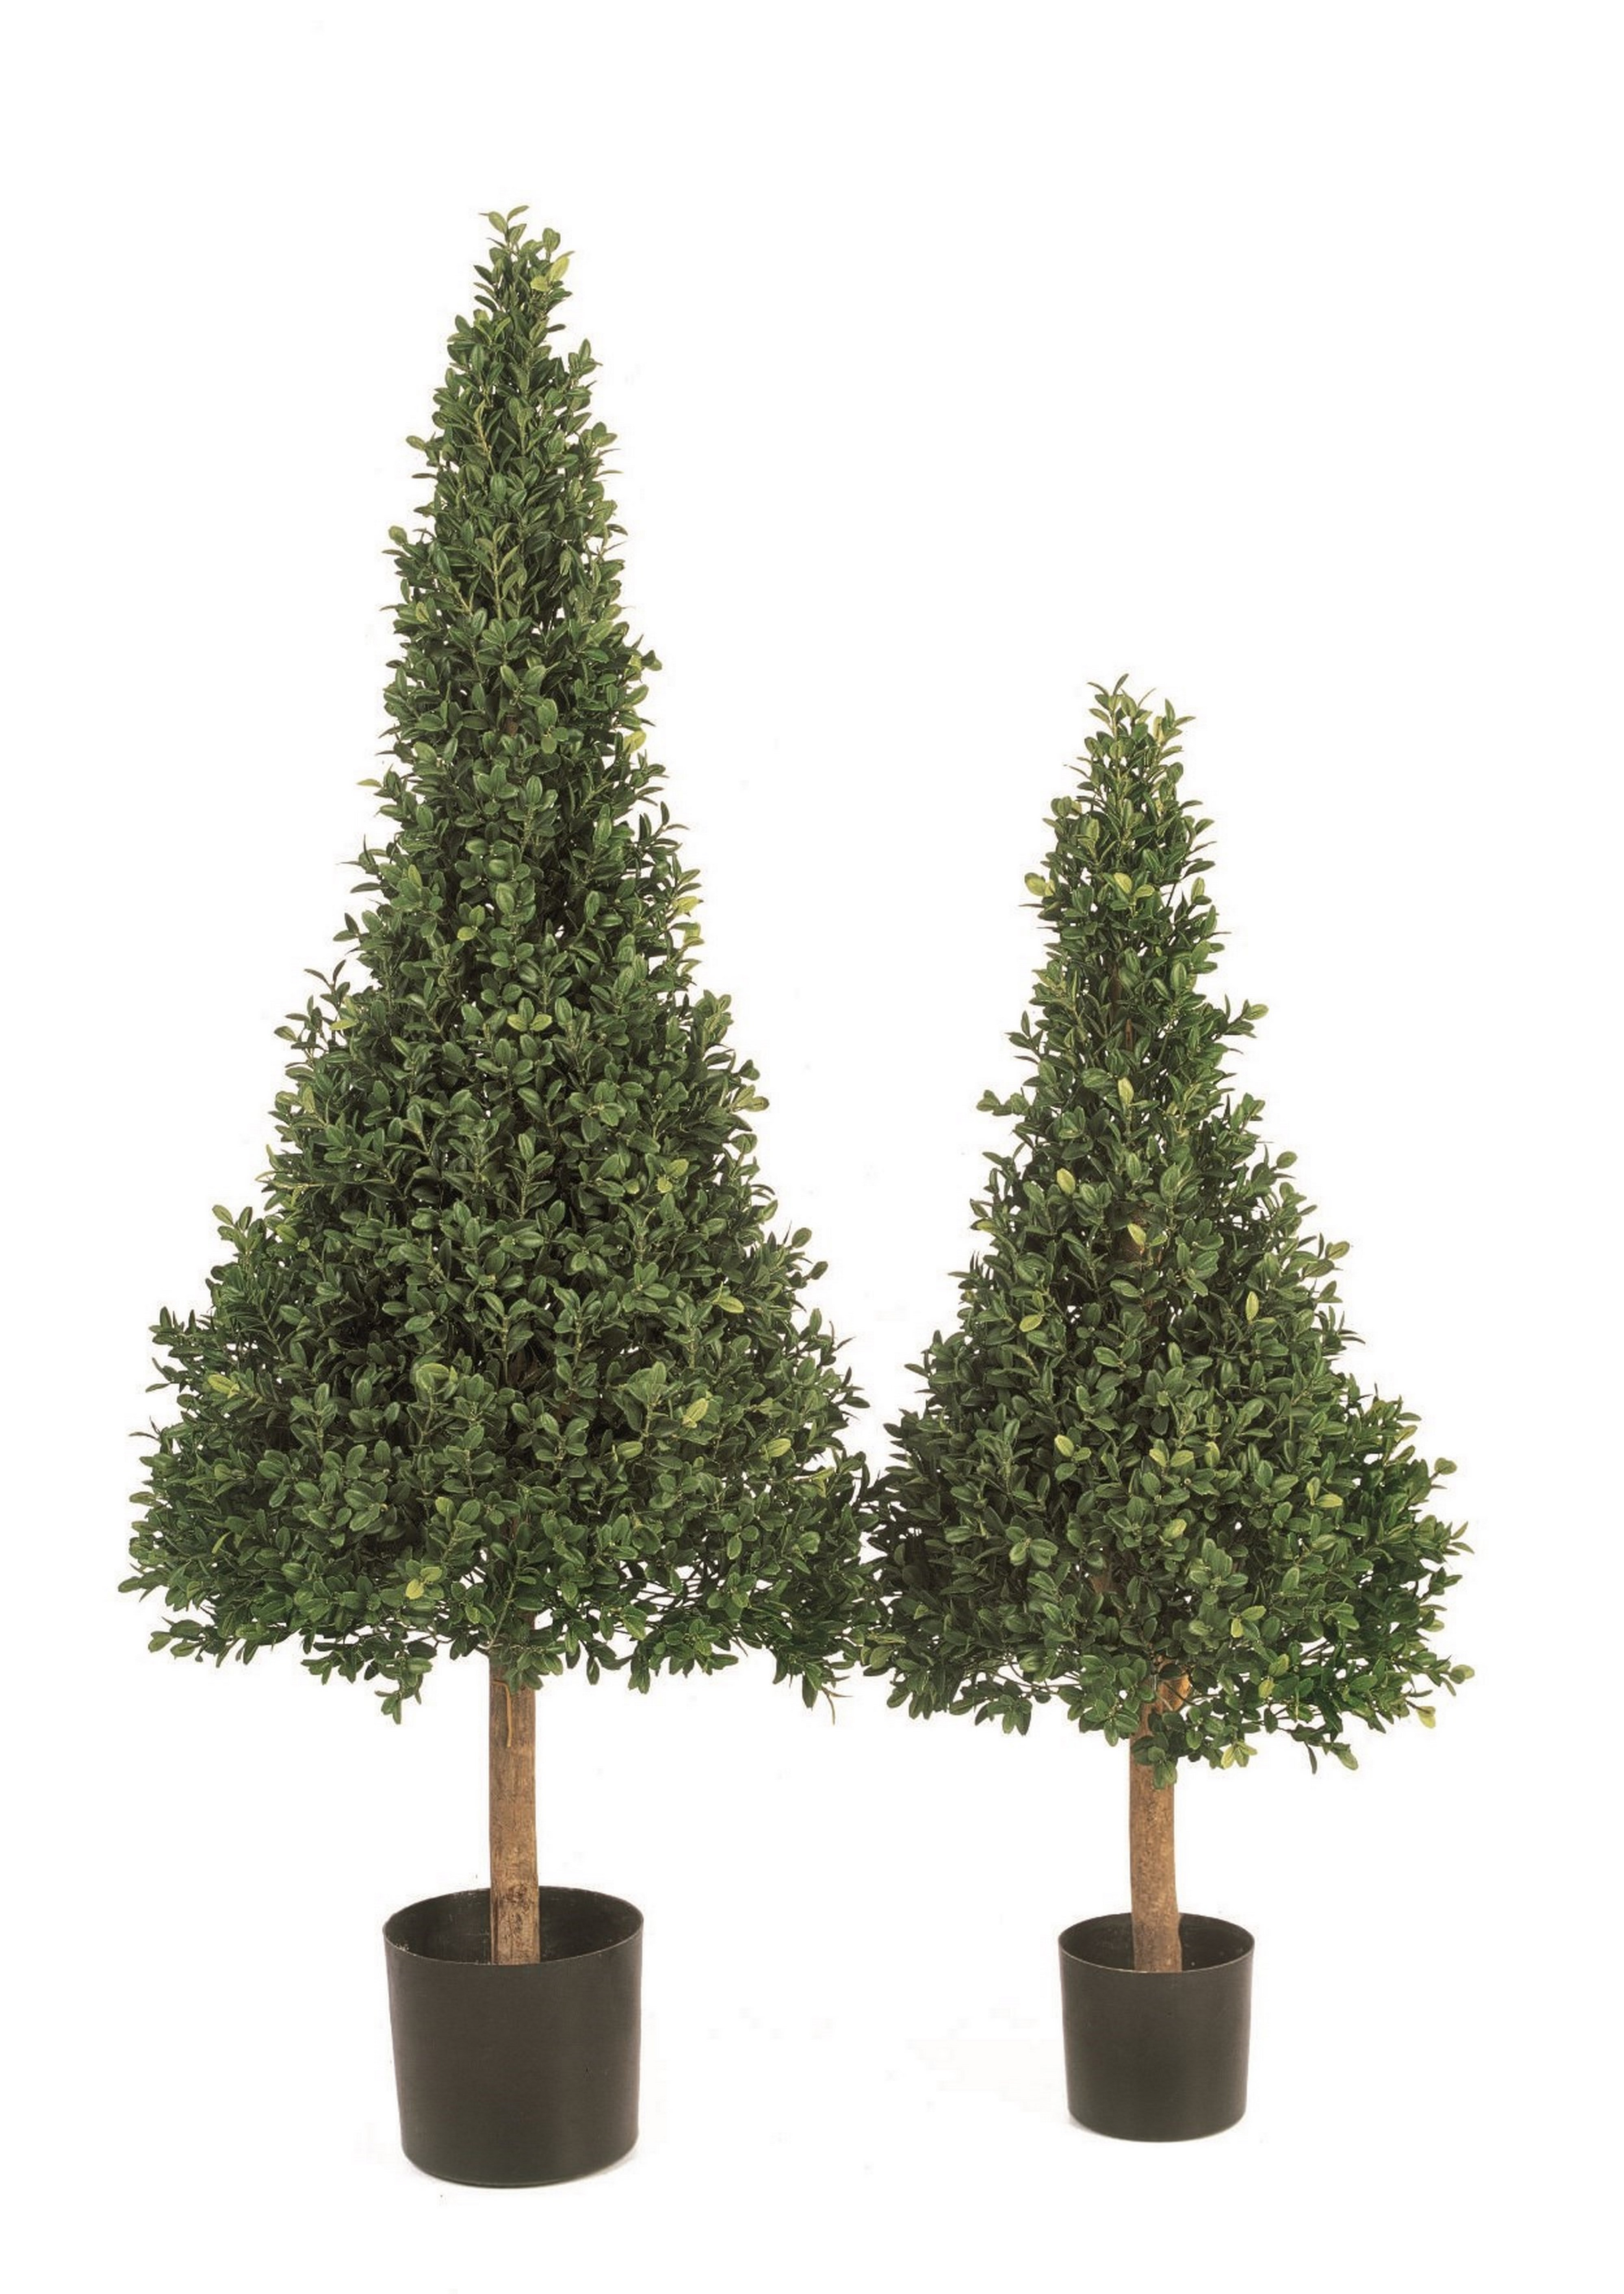 buxus pyramide buchsbaum kunstpflanze im topf palmenmarkt. Black Bedroom Furniture Sets. Home Design Ideas